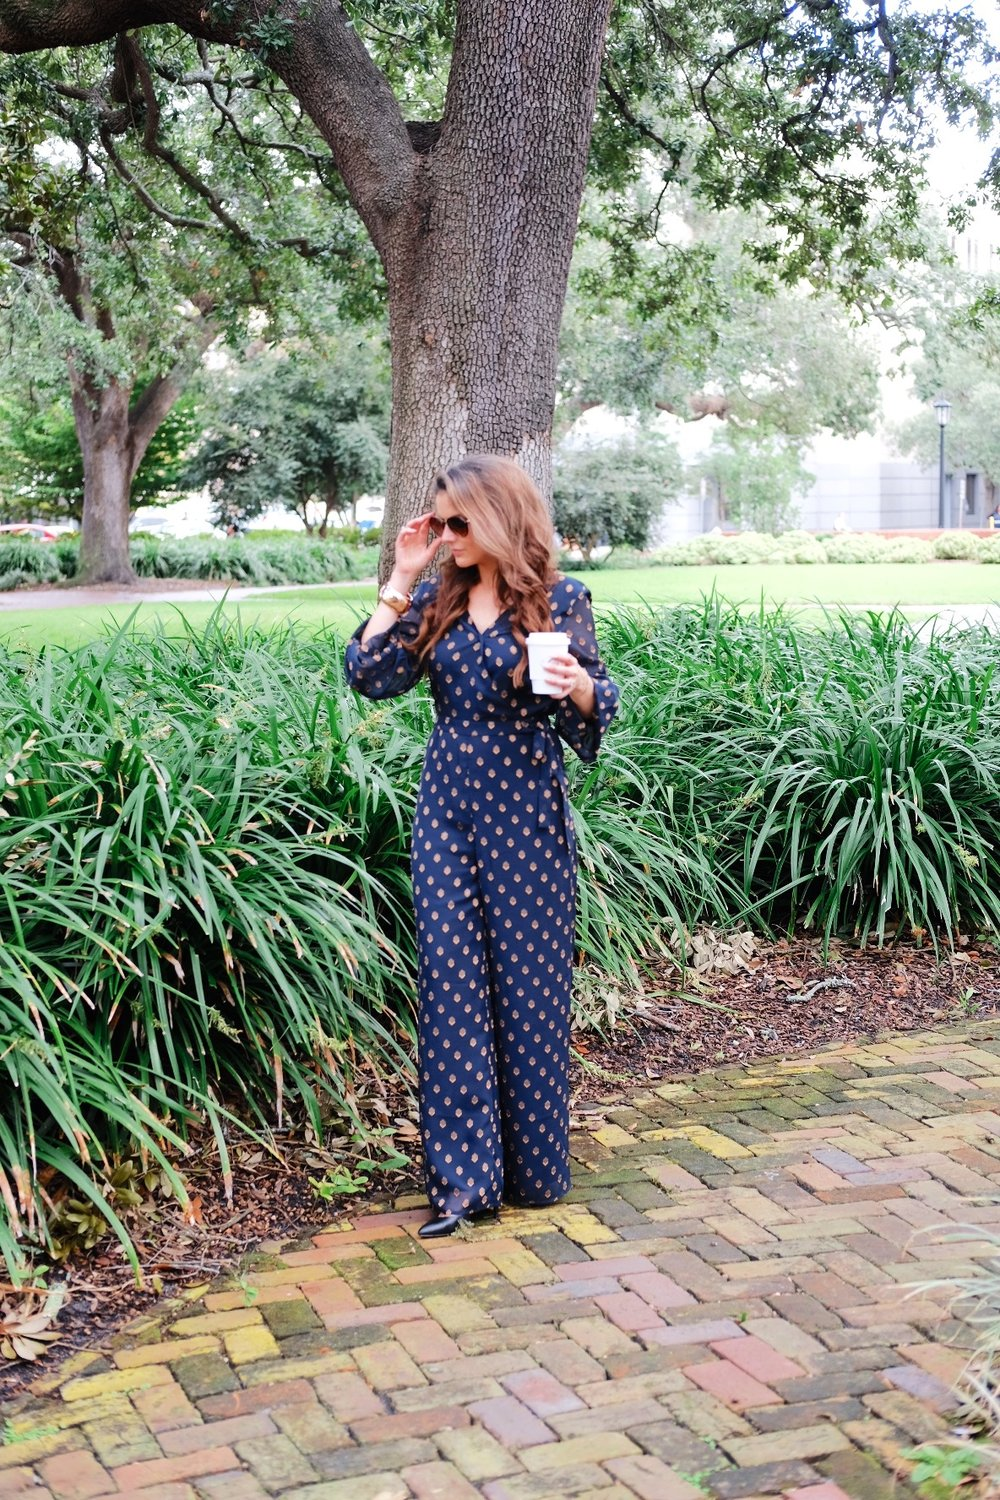 Brenna Lauren in Telfair Square with coffee